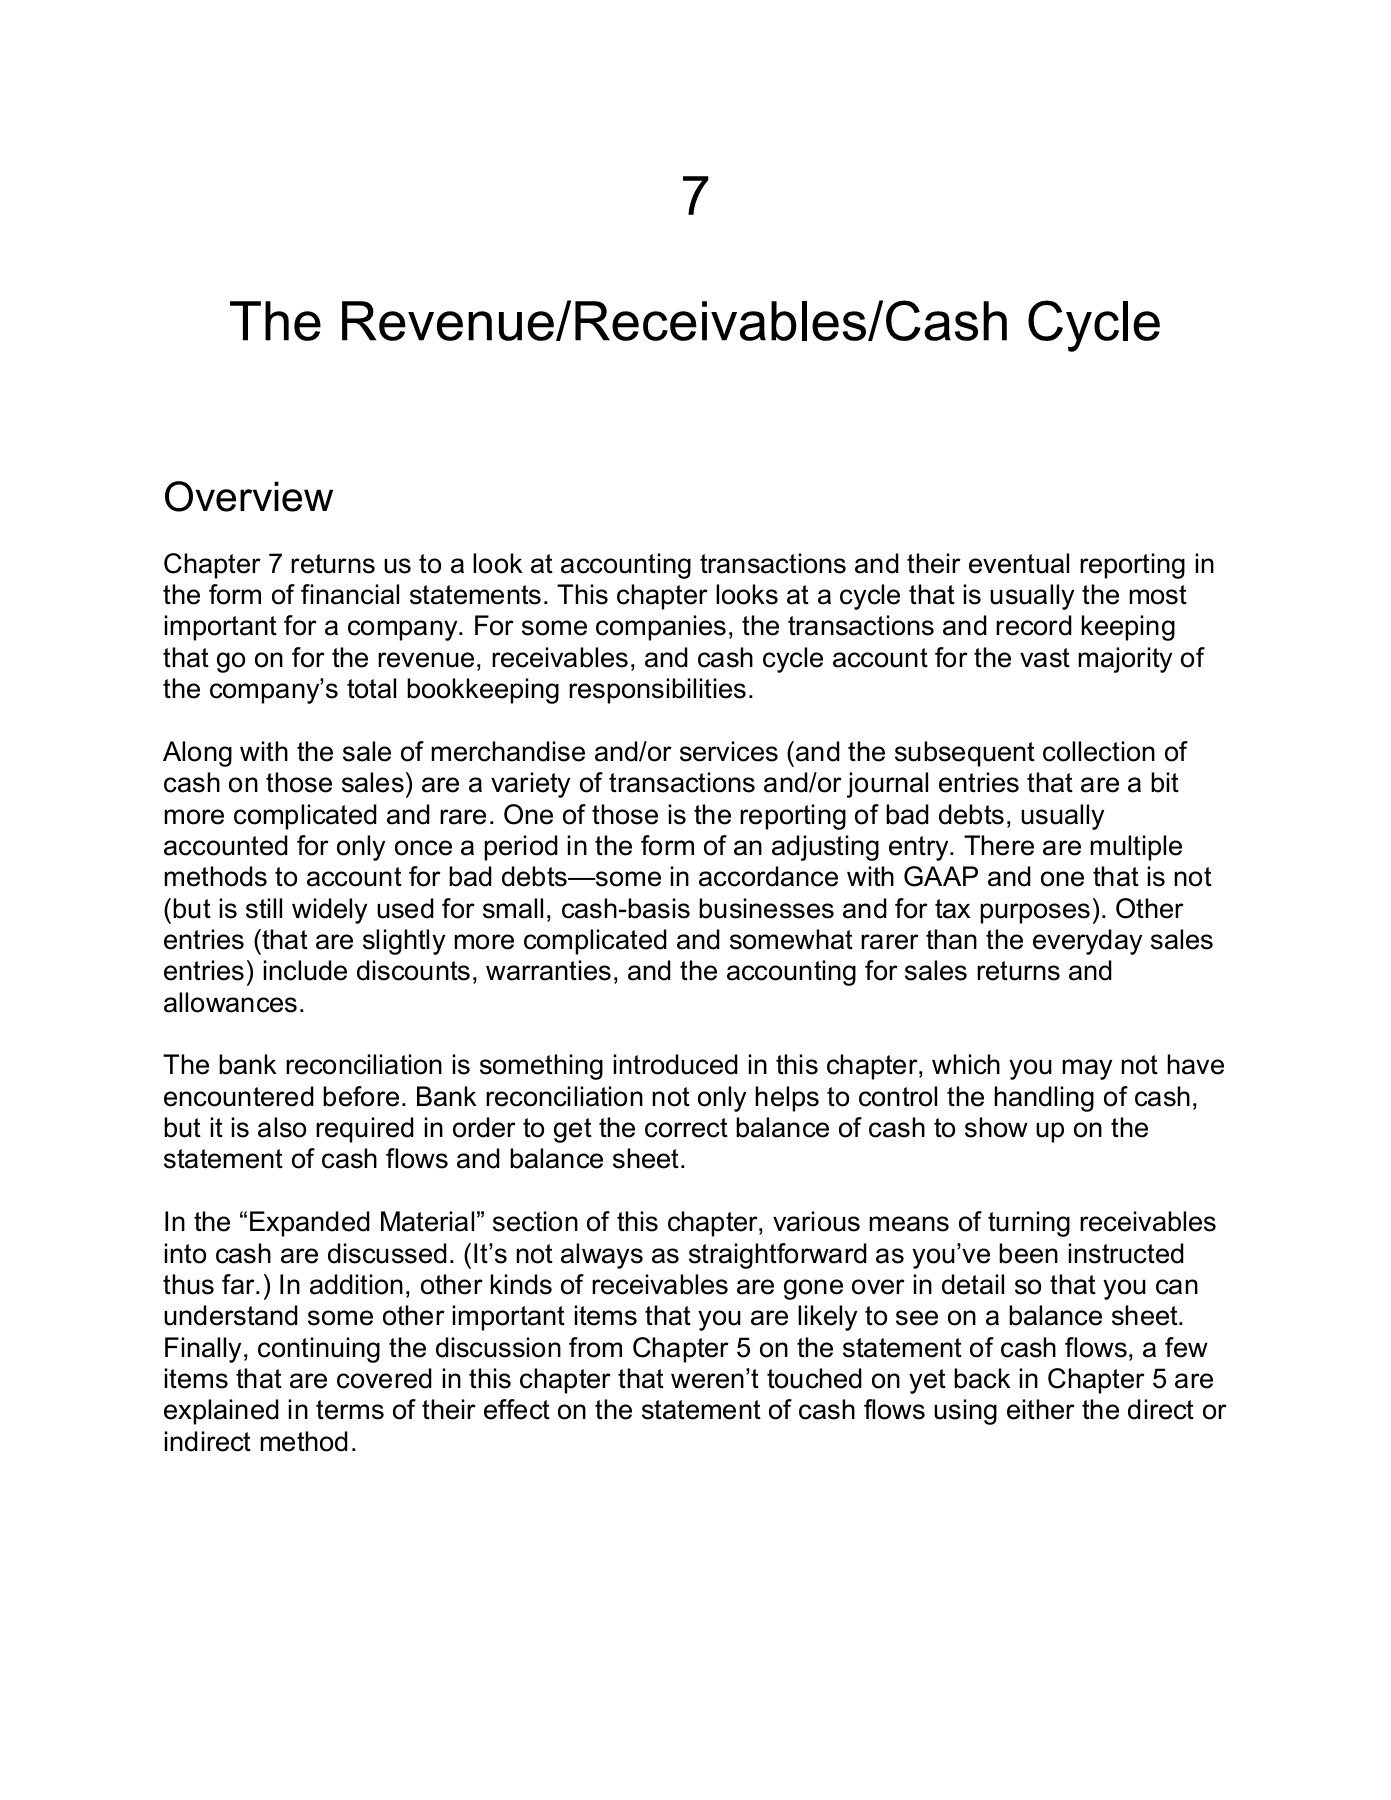 7 The Revenue Receivables Cash Cycle Cengage Learning